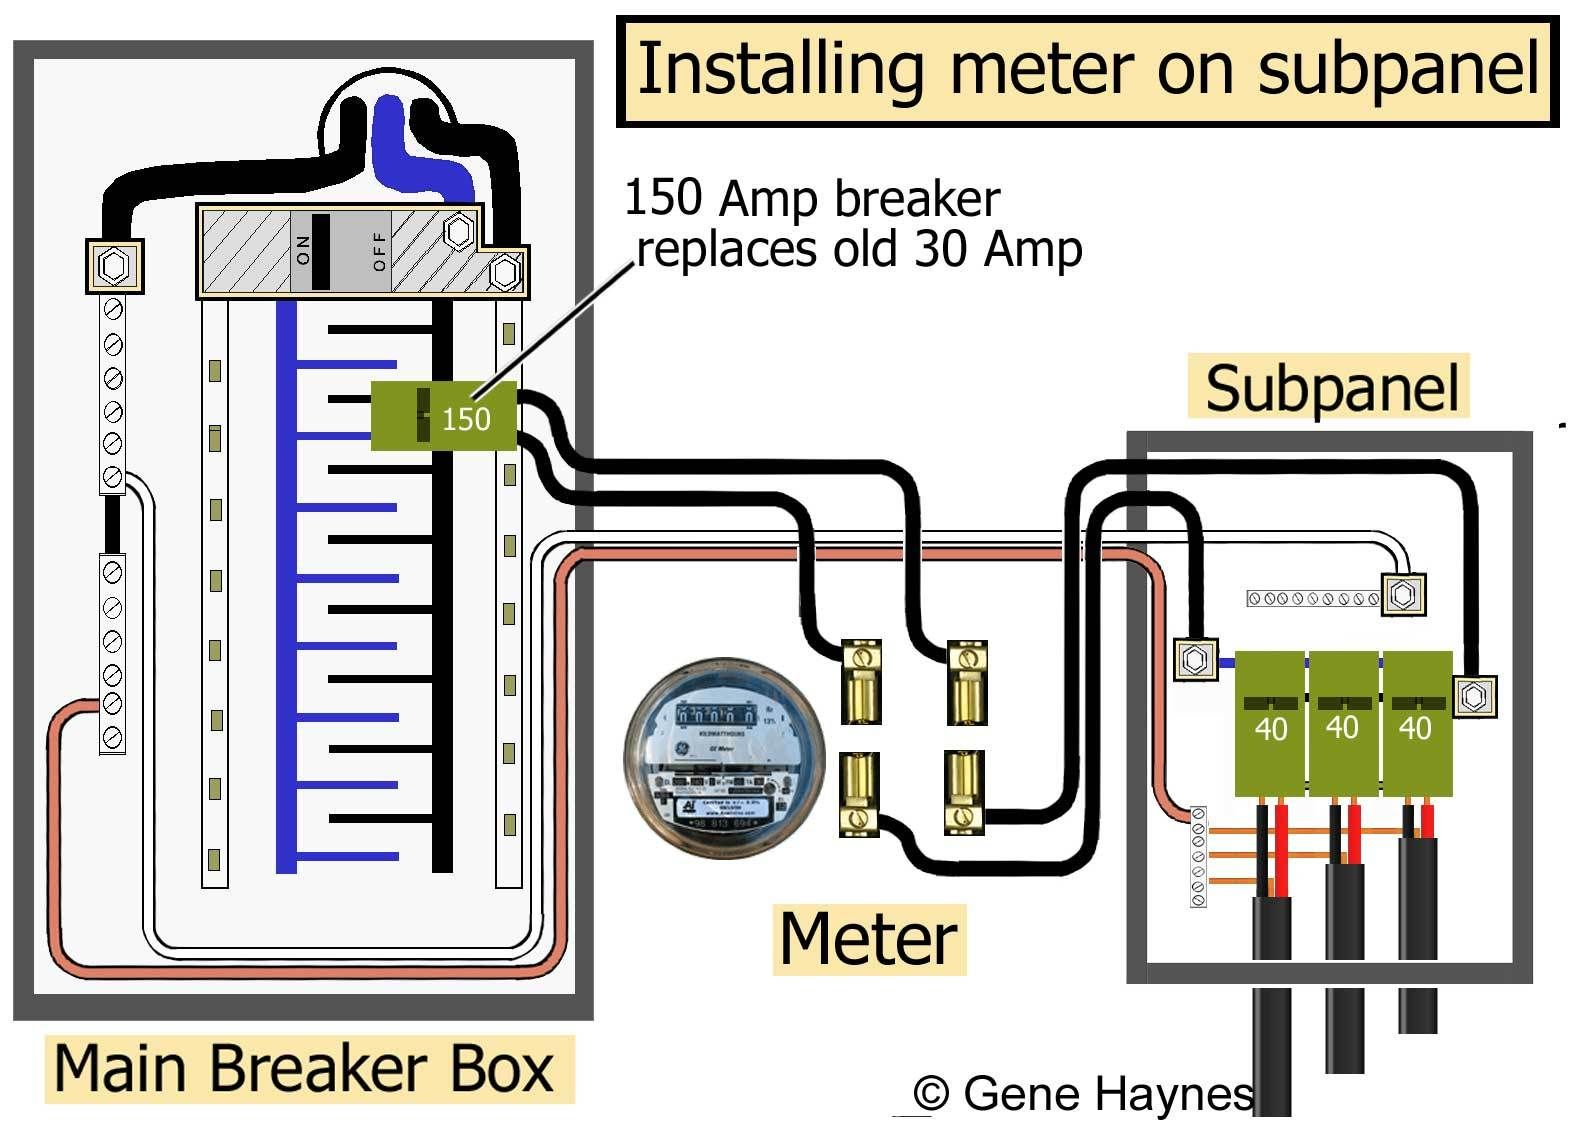 wiring diagram for meter box wiring diagram inside diagram of wiring meter box for homes on wiring from meter to breaker [ 1575 x 1130 Pixel ]